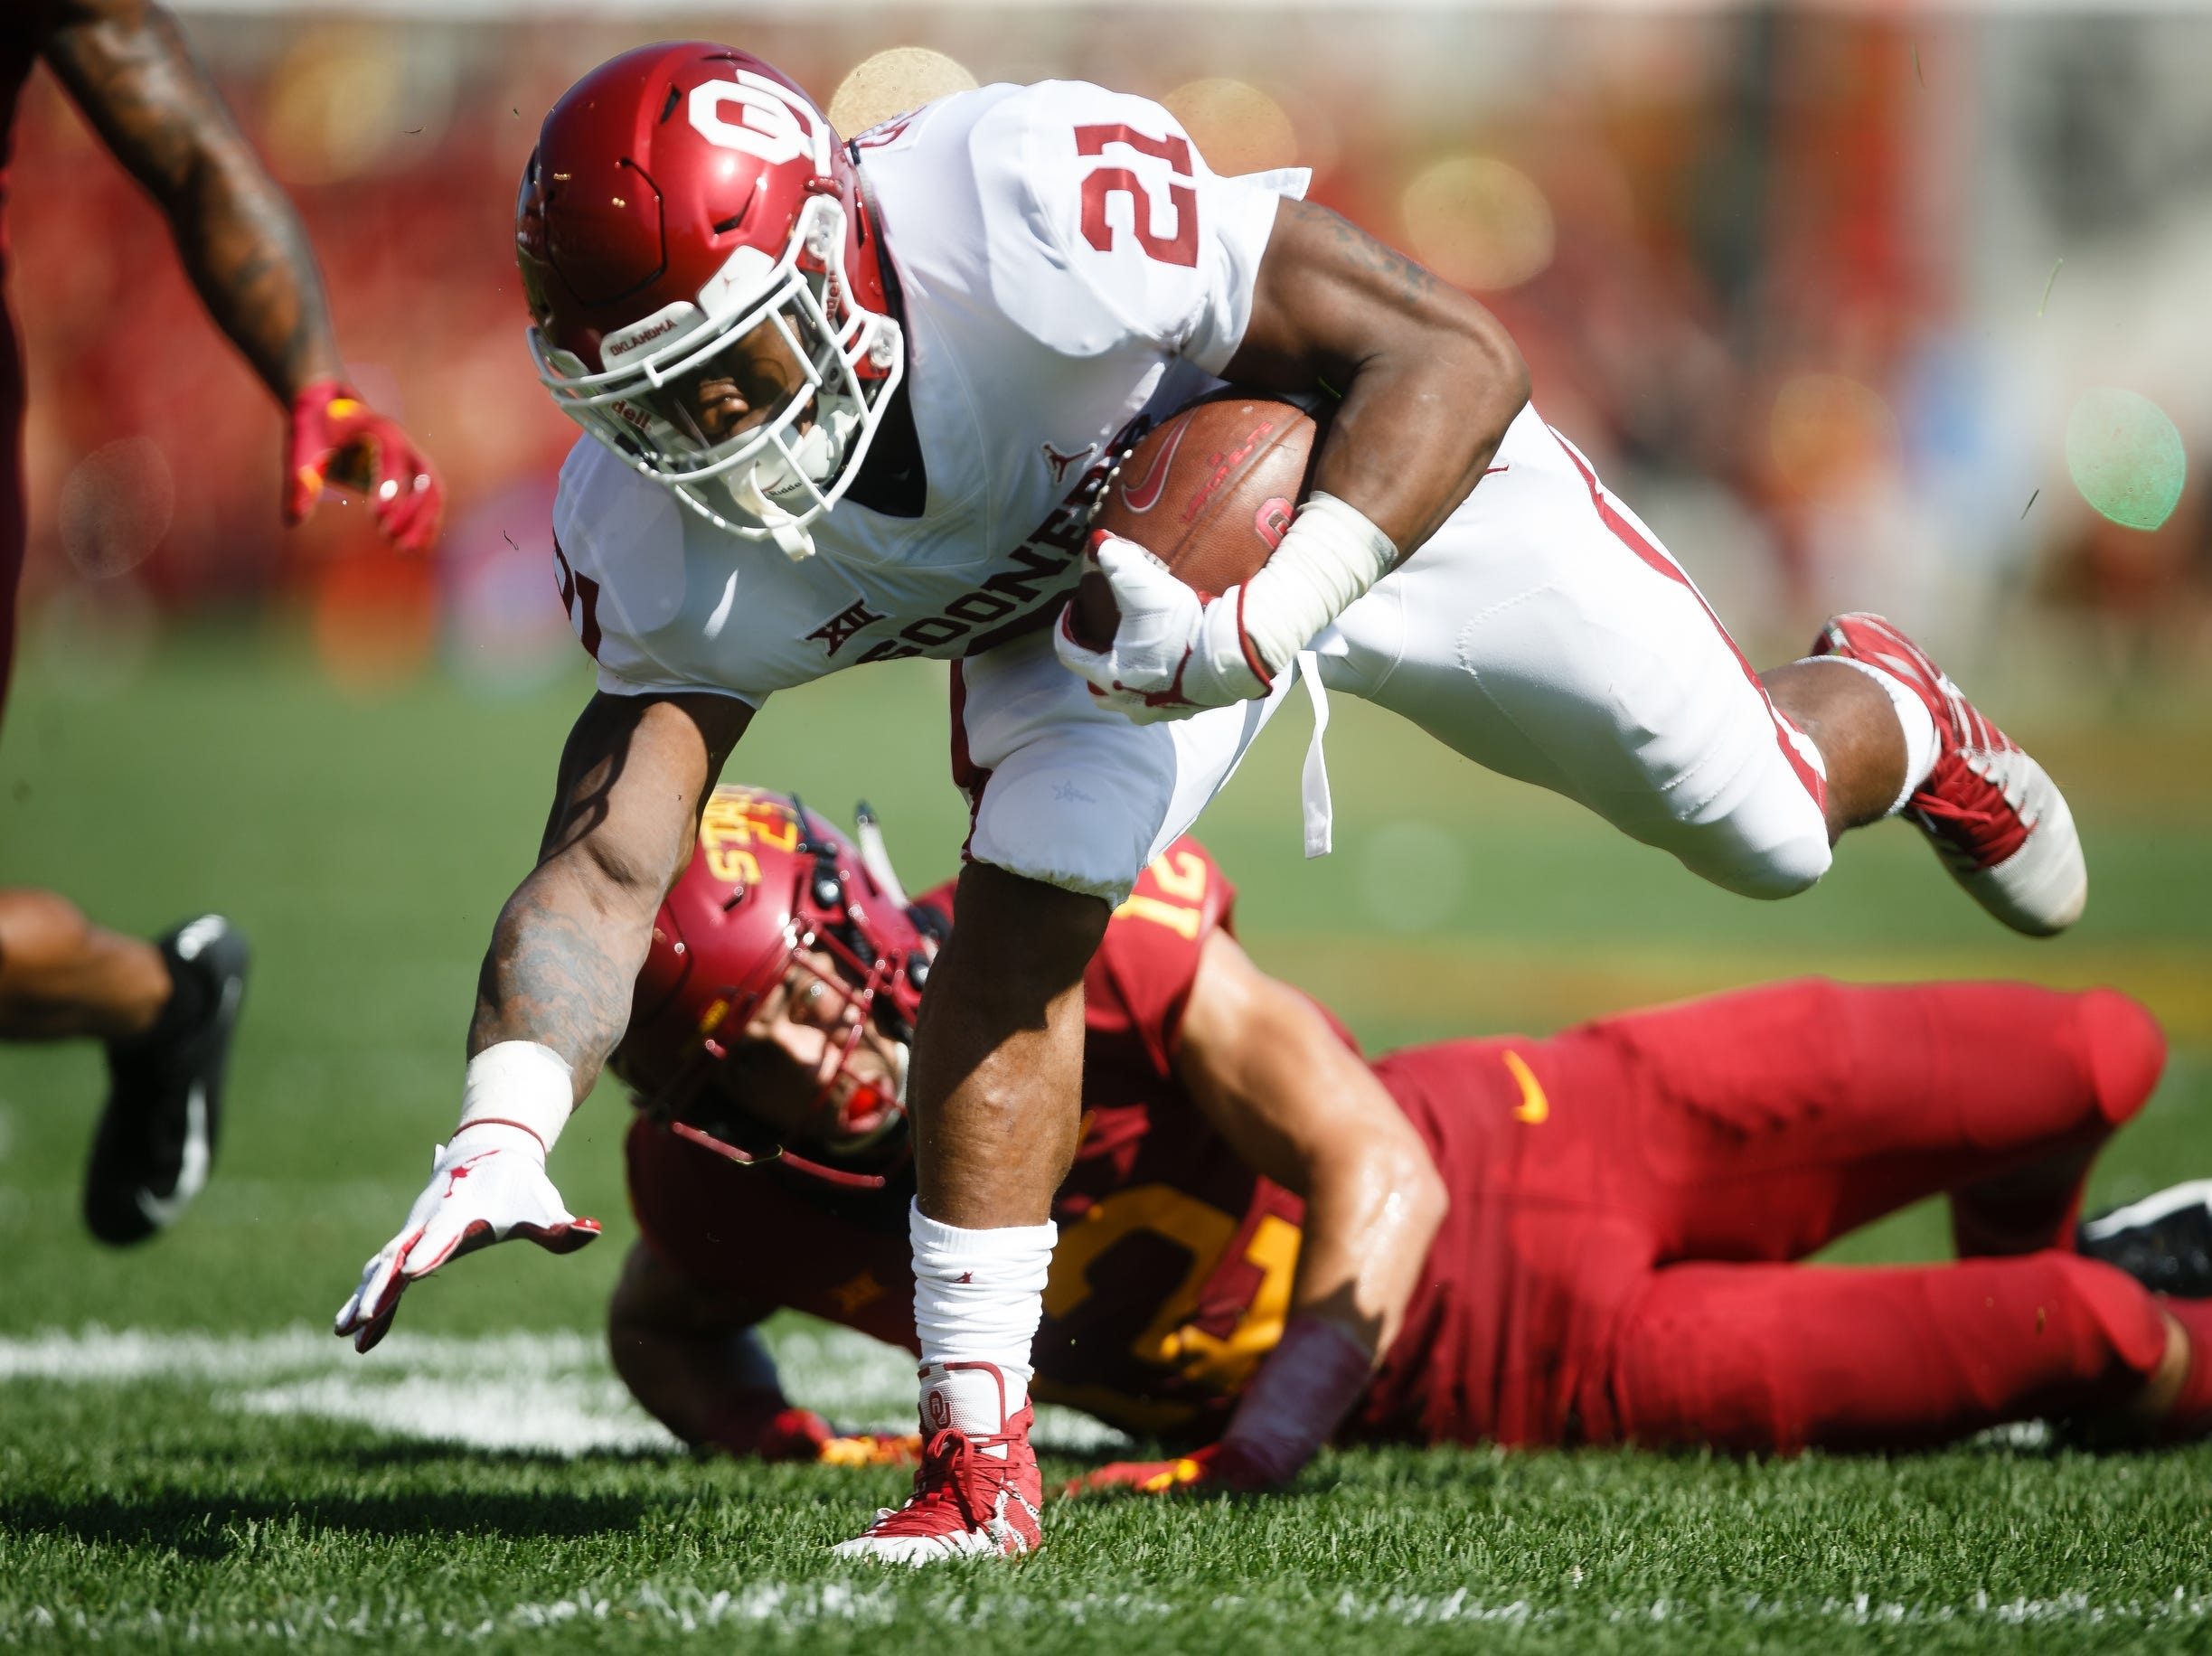 Oklahoma's Marcelias Sutton (21) gets away from Iowa State's Greg Eisworth (12) during their football game at Jack Trice Stadium on Saturday, Sept. 15, 2018 in Ames. Oklahoma would go on to win 37-27.